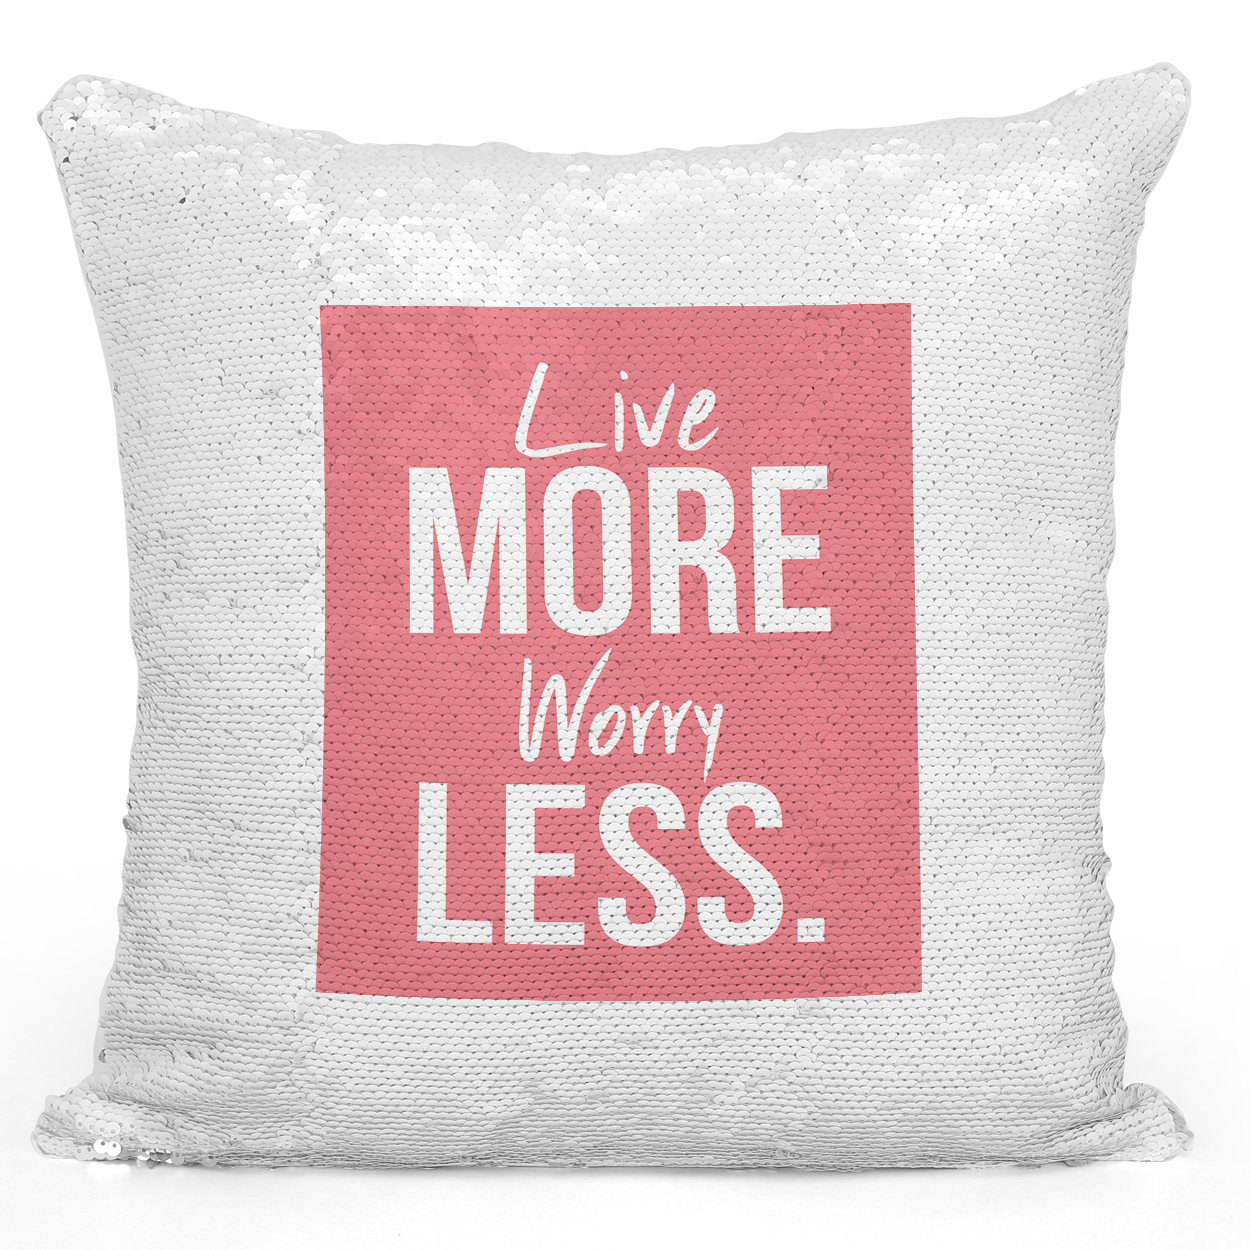 16x16 inch Sequin Throw Pillow Magic Flip Pillow Live More Worry Less Helpful Advise Positive Message Pillow Loud Universe